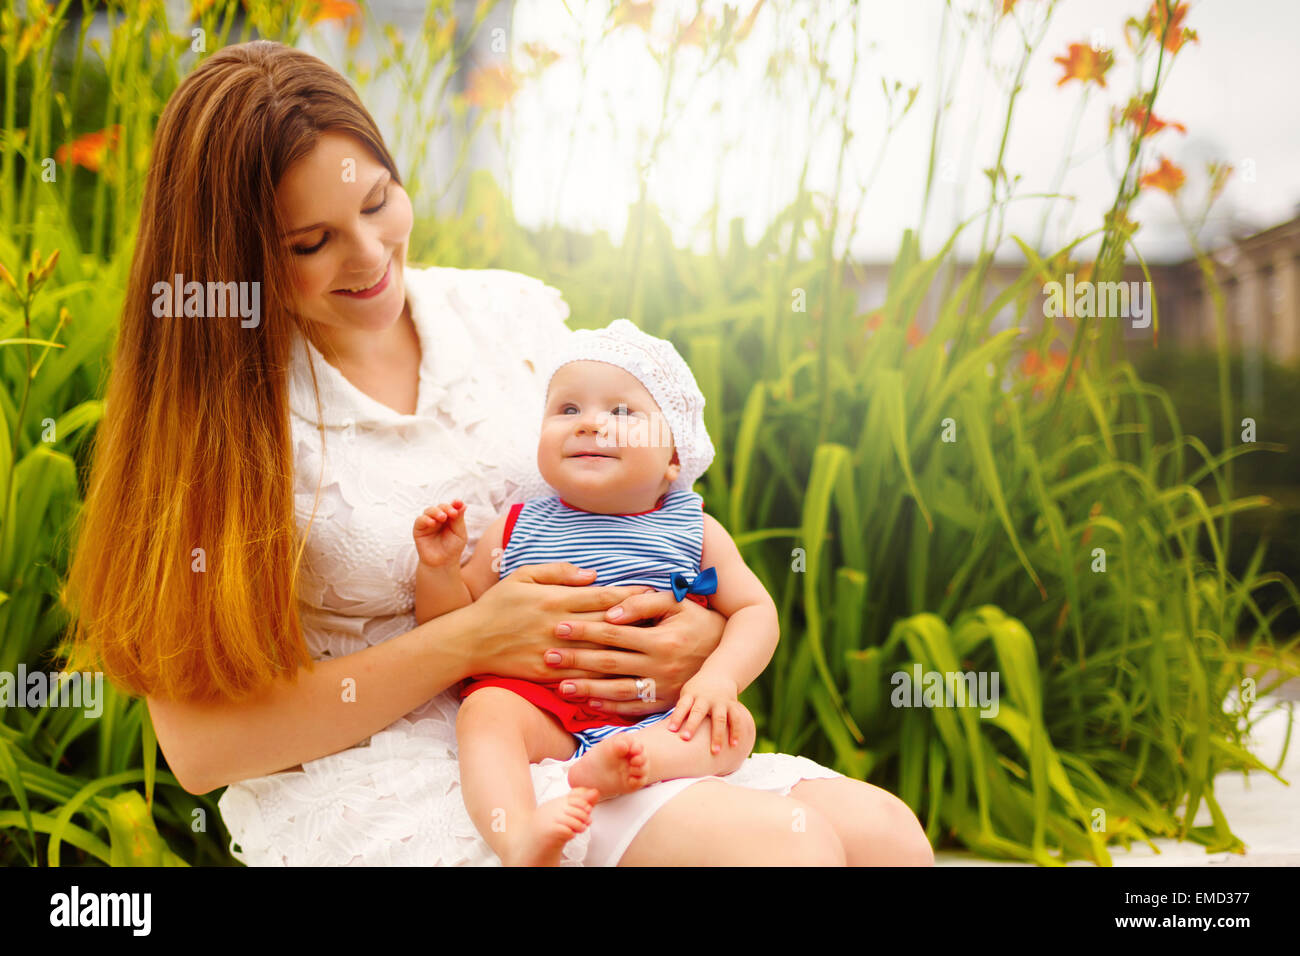 Cute smiling Toddler Baby sitting on Mom`s knees and having Fun. Relaxing in green summer Park. Selective focus. - Stock Image